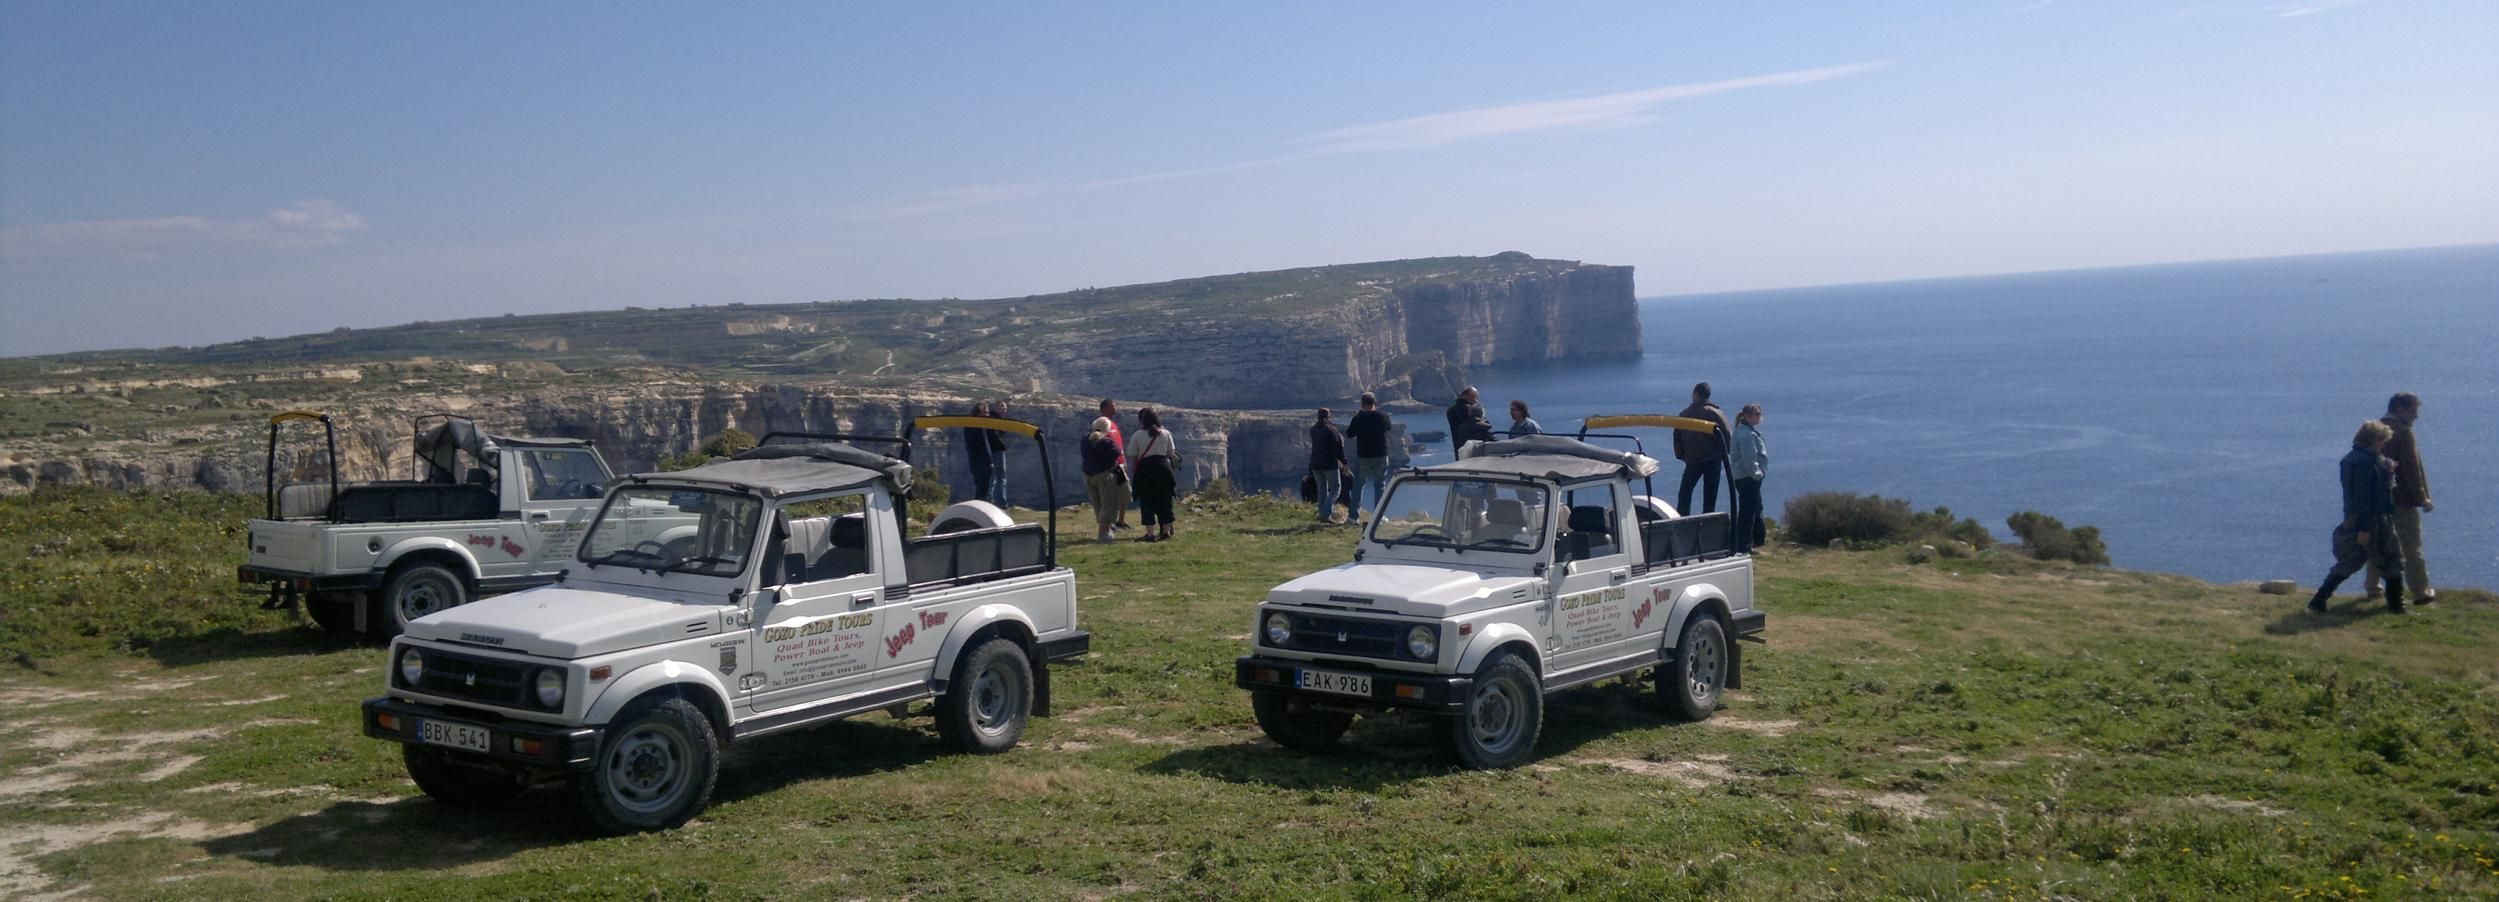 Malta: Cabin Cruise and Jeep Combo Tour to Comino and Gozo